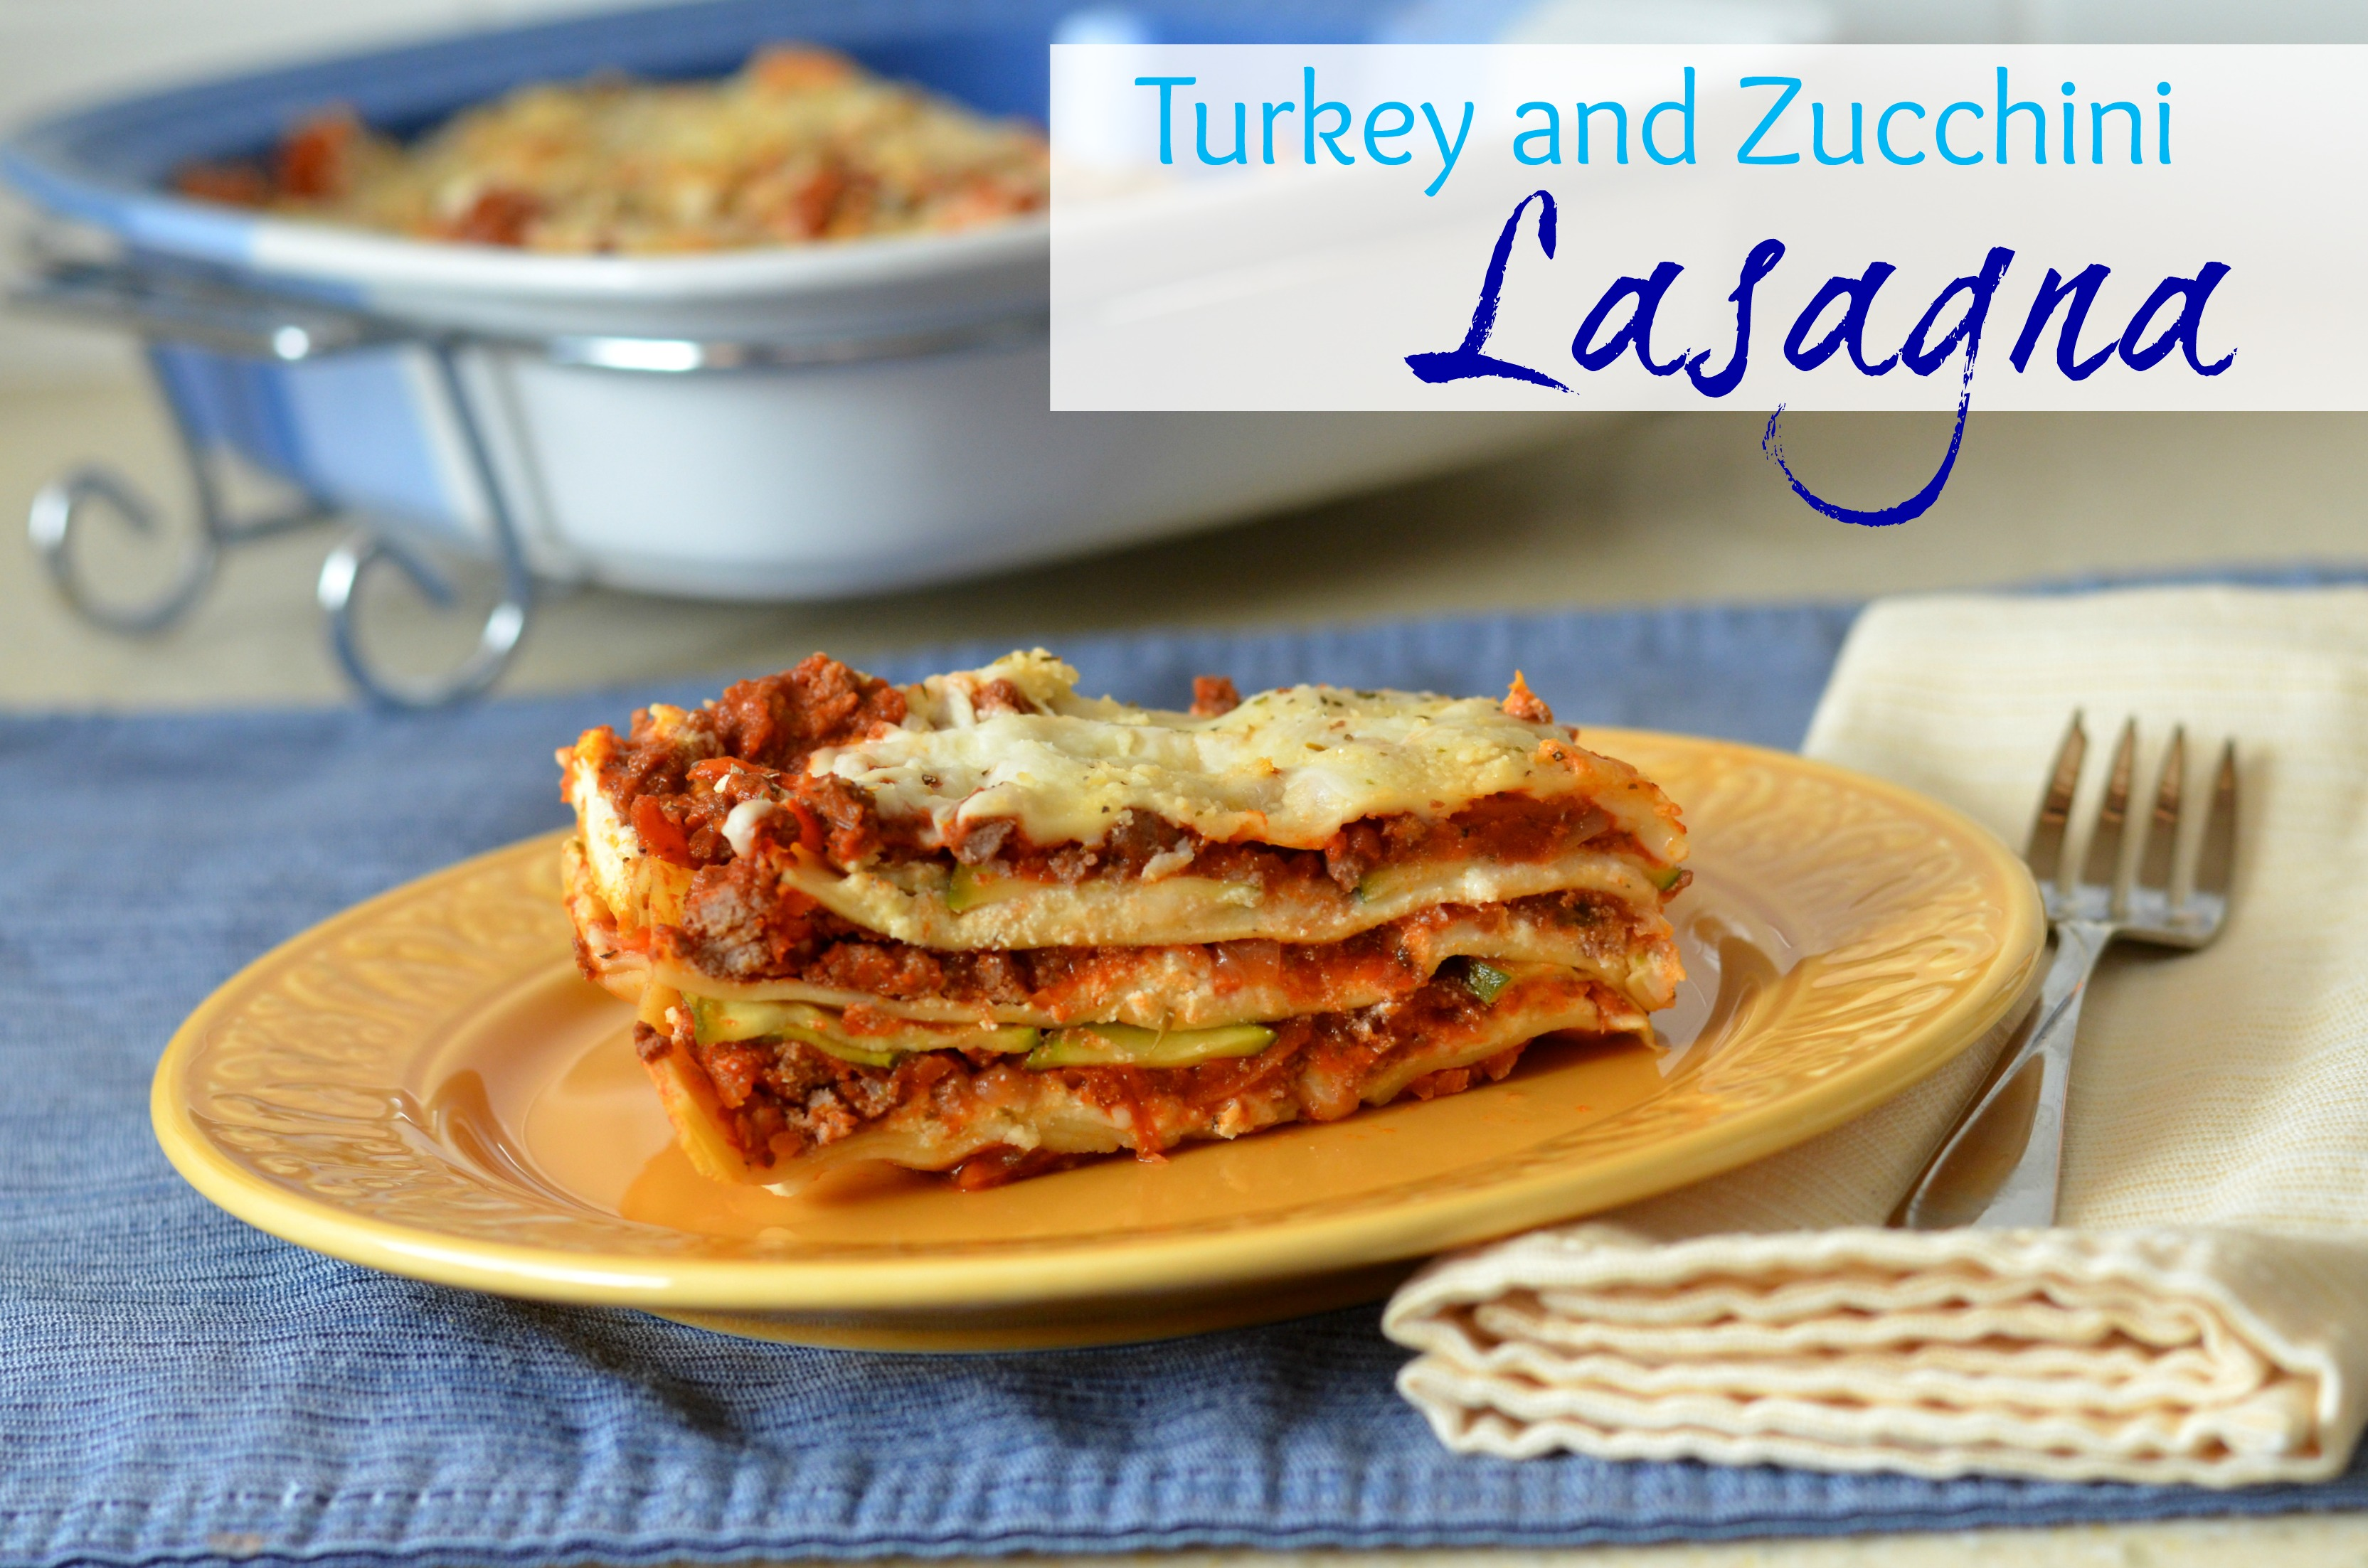 Turkey and Zucchini Lasagna